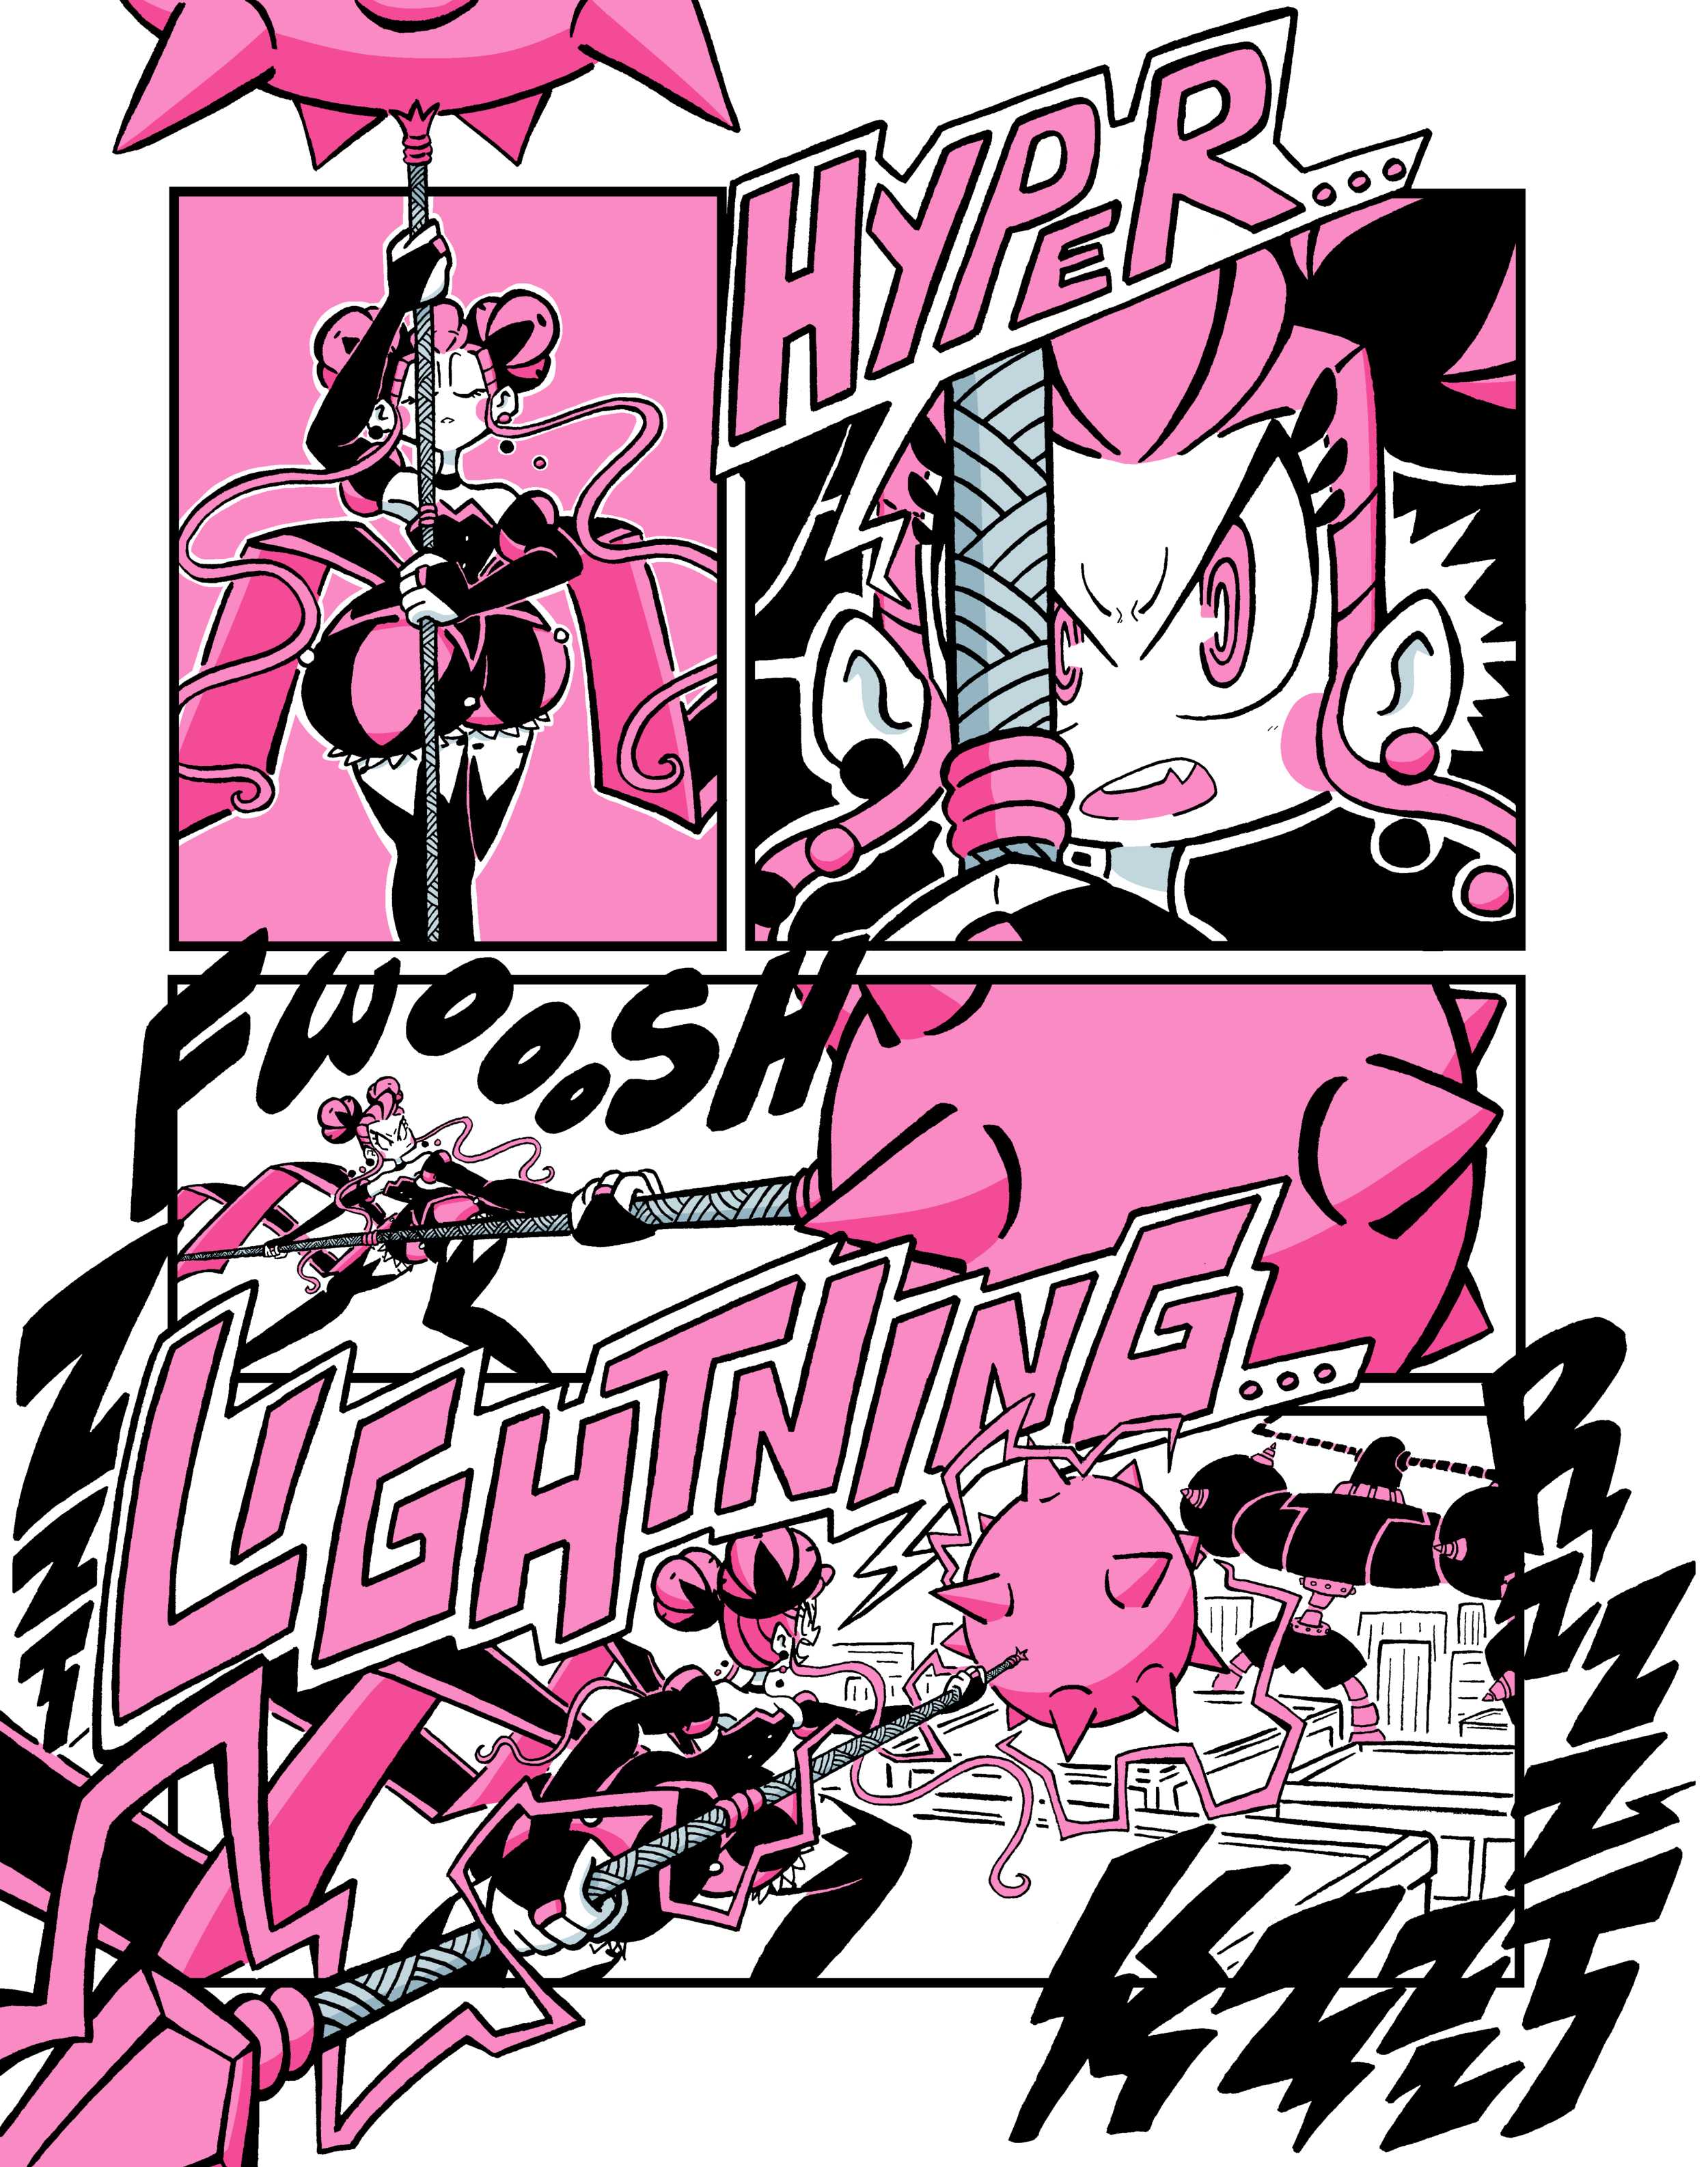 amgdoissue2page22.png